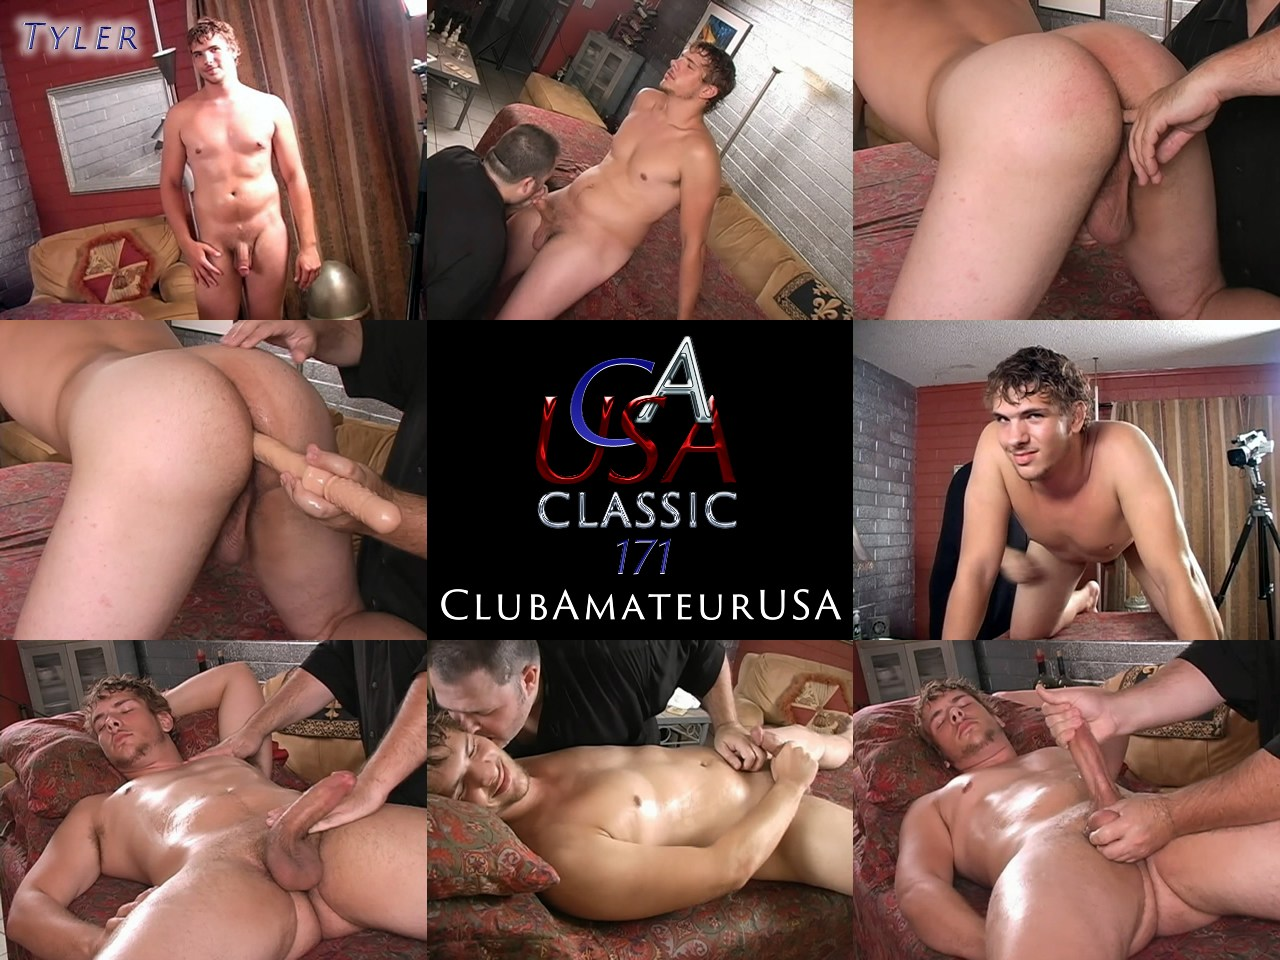 Download or Stream Classic CAUSA 171 Tyler - Click Here Now